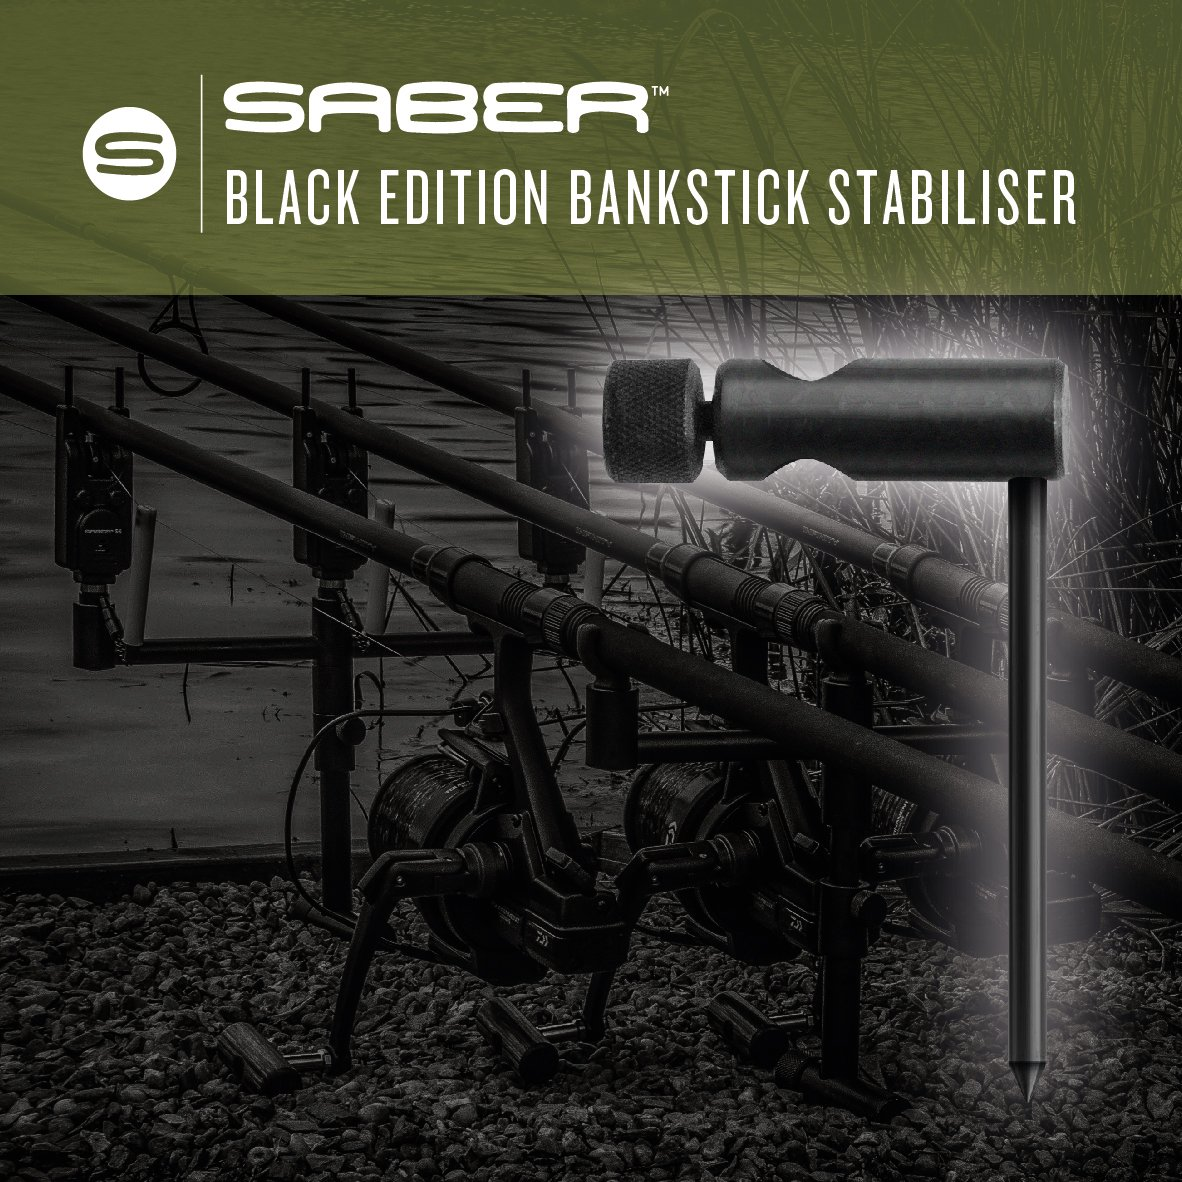 And a Stabiliser for £4.99? For more <b>Details</b> click https://t.co/GFUZBLDMyQ #carpfishing #car